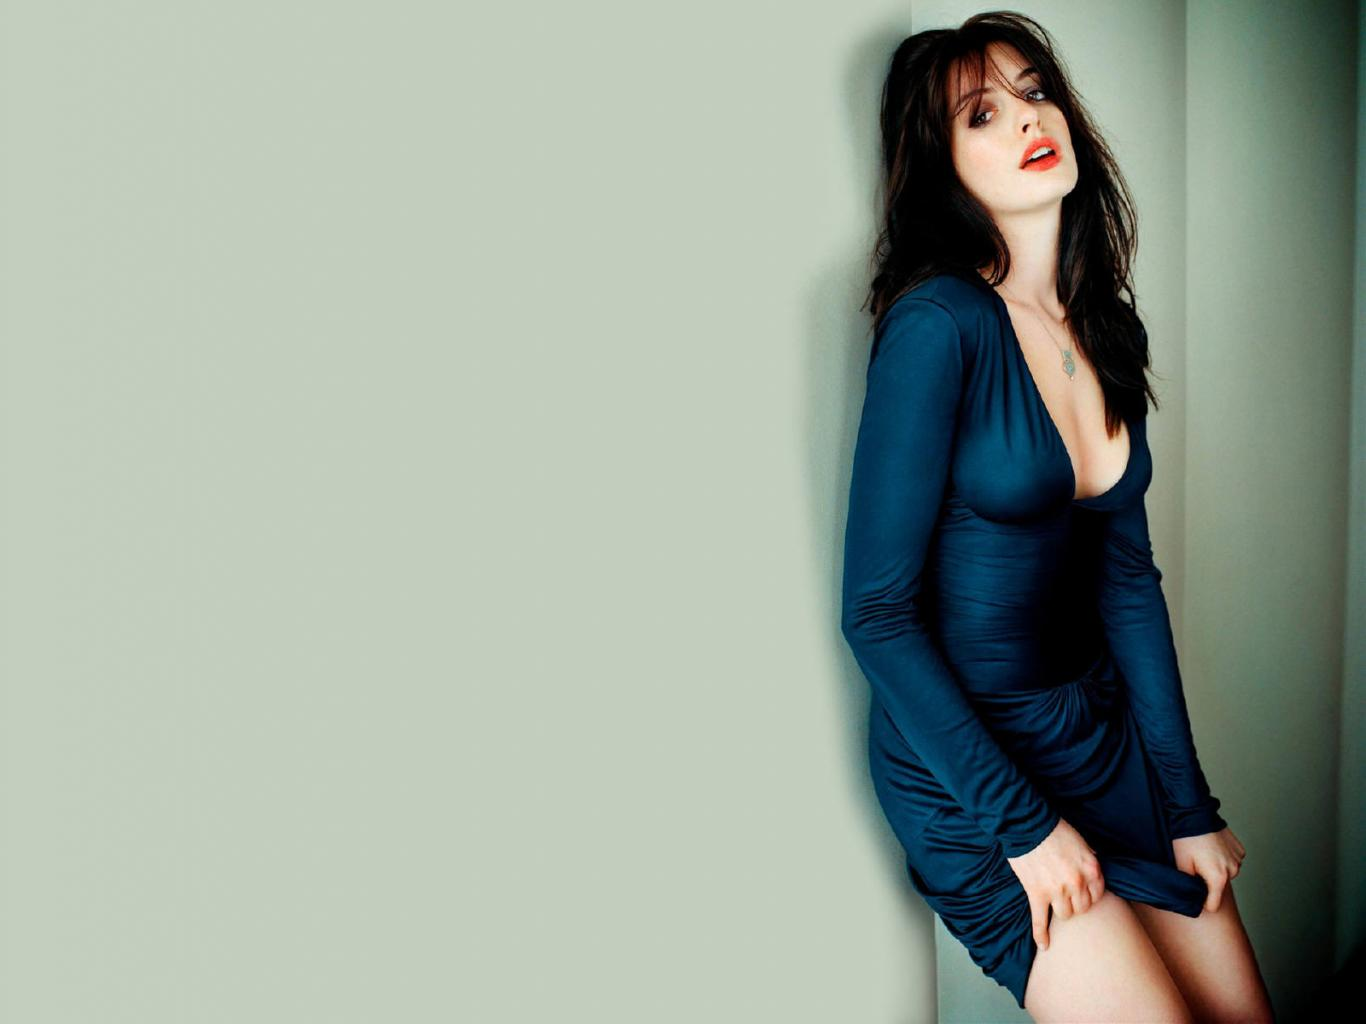 1366x1024 - Anne Hathaway Wallpapers 29